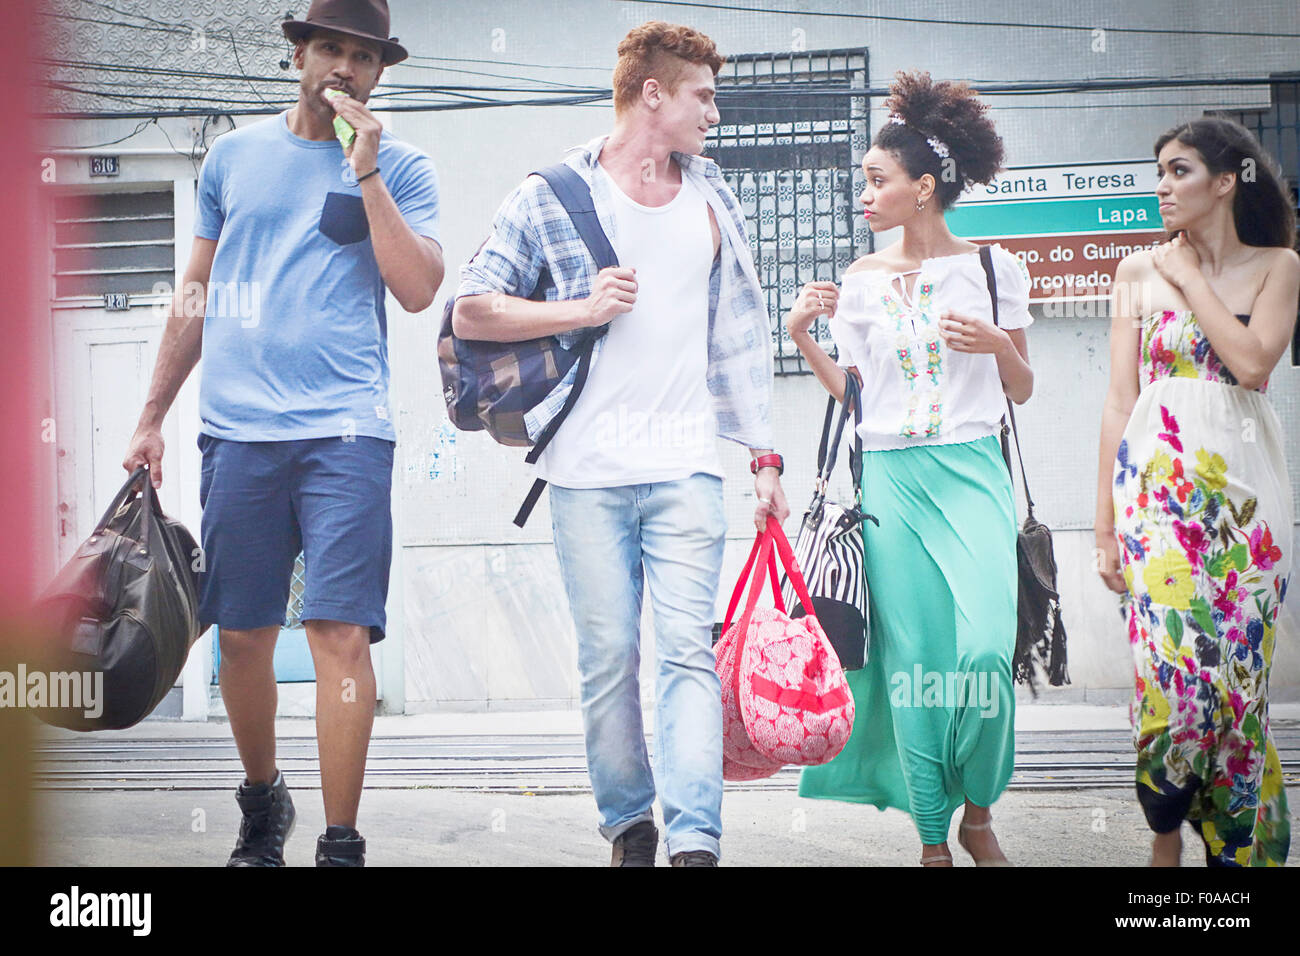 Small group of people walking together, carrying travel bags - Stock Image